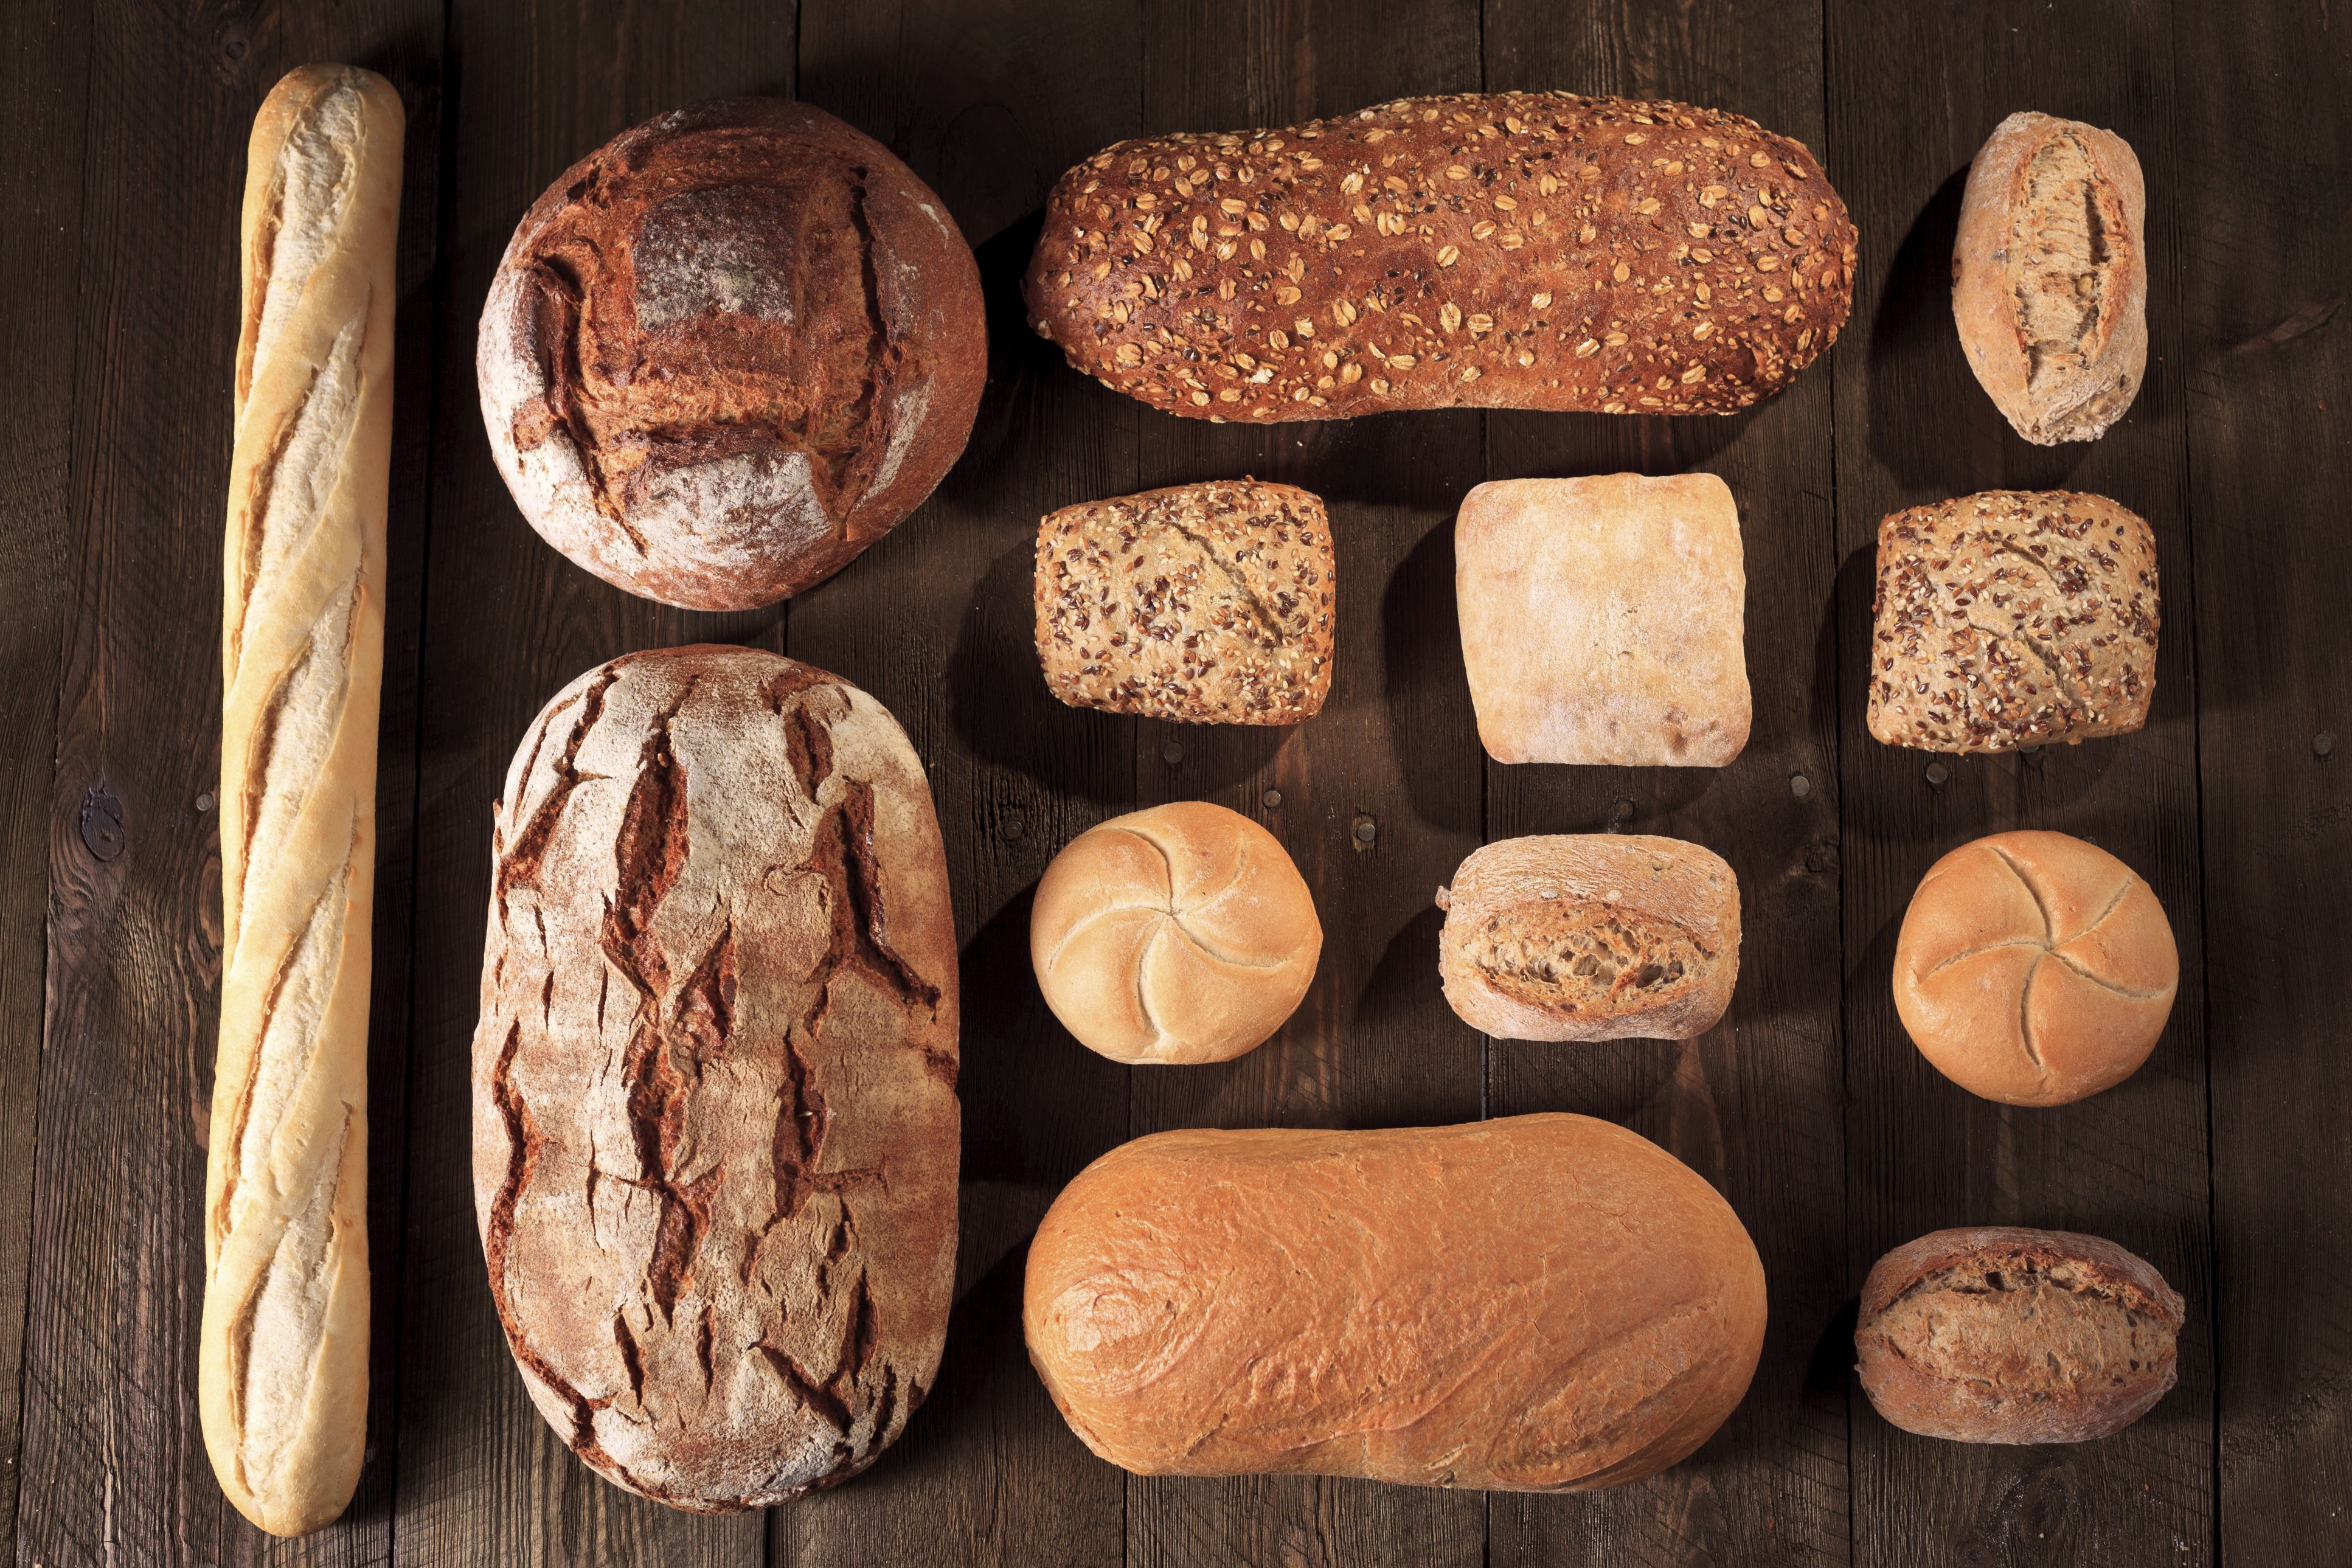 Variety of breads on wooden surface